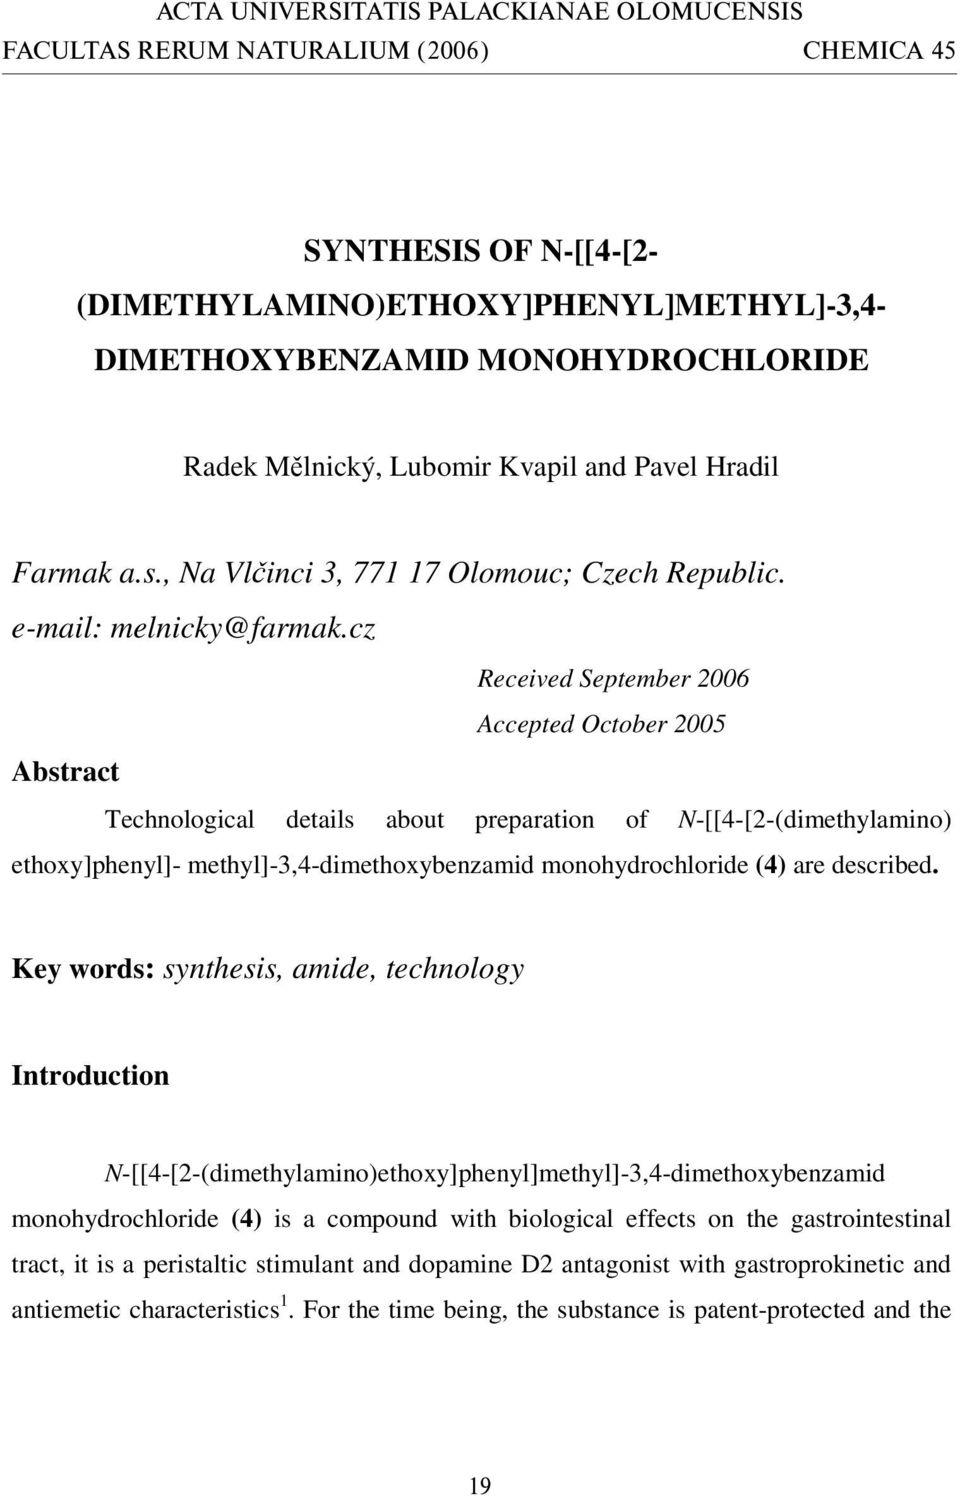 cz Received September 2006 Accepted October 2005 Abstract Technological details about preparation of -[[4-[2-(dimethylamino) ethoxy]phenyl]- methyl]-3,4-dimethoxybenzamid monohydrochloride (4) are